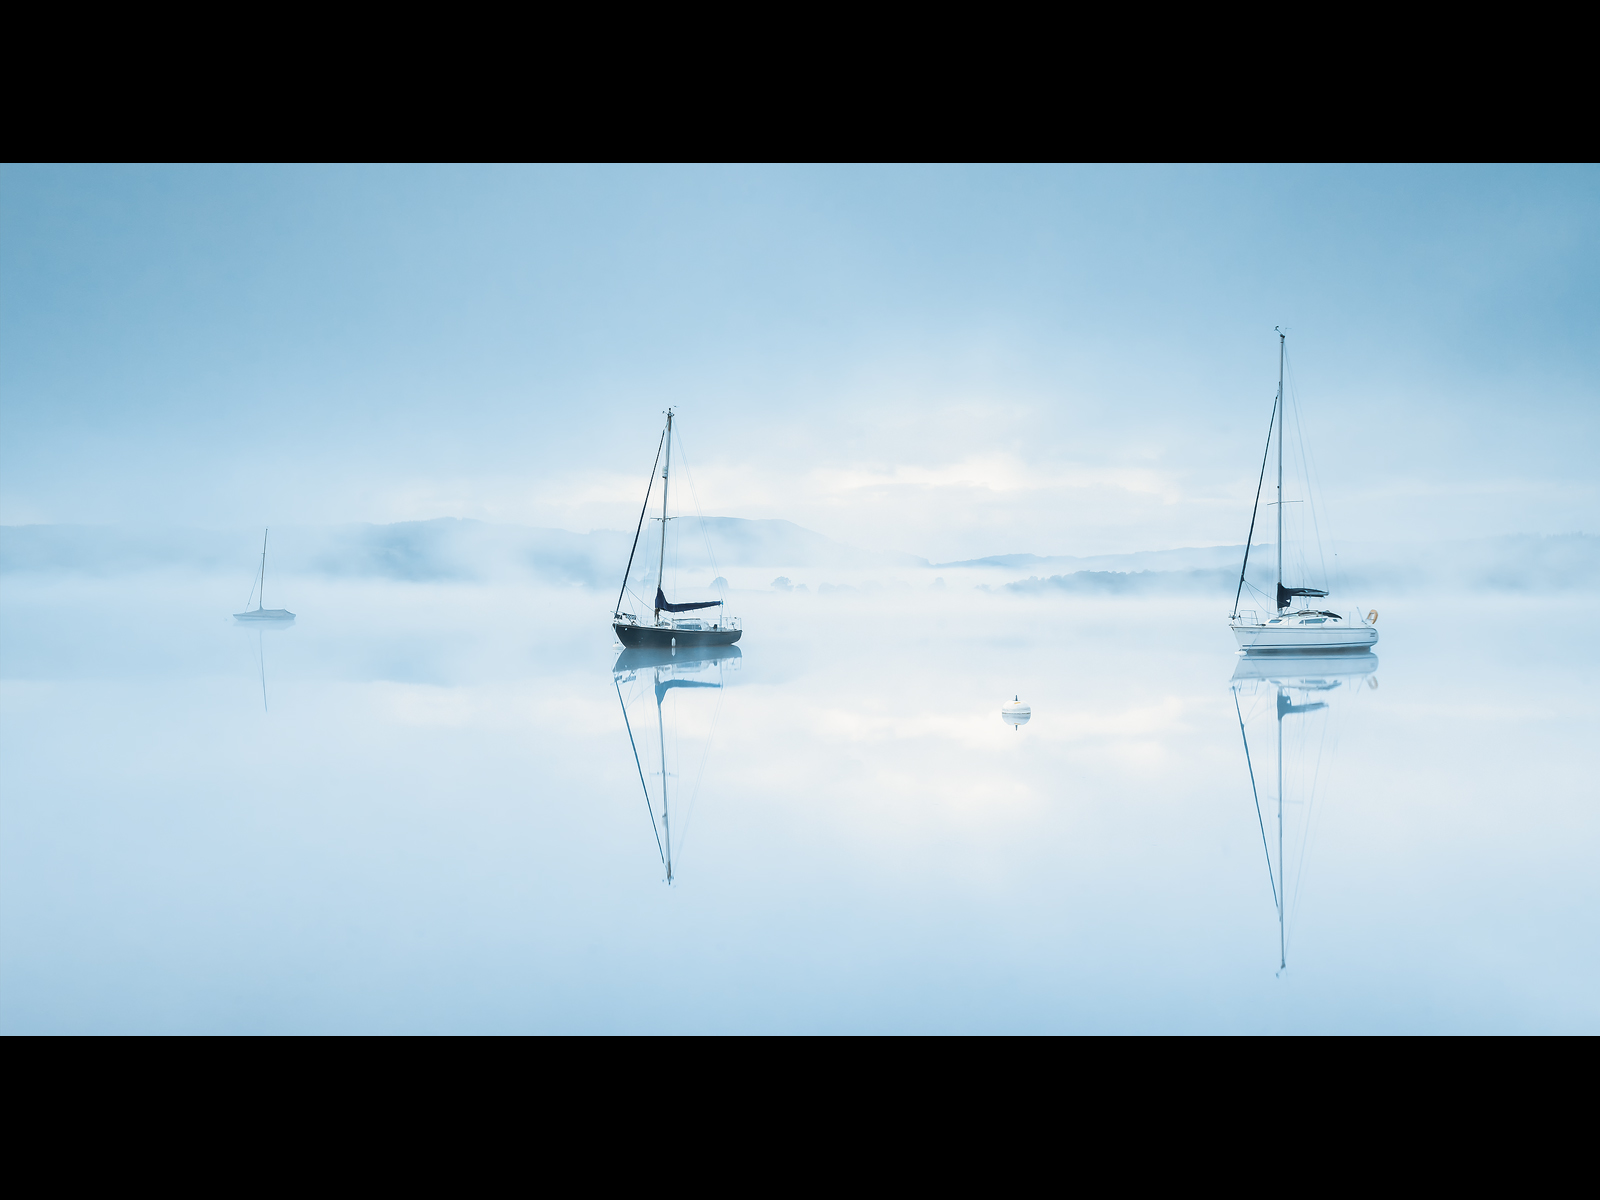 Misty_Dawn_At_Waterhead.jpg